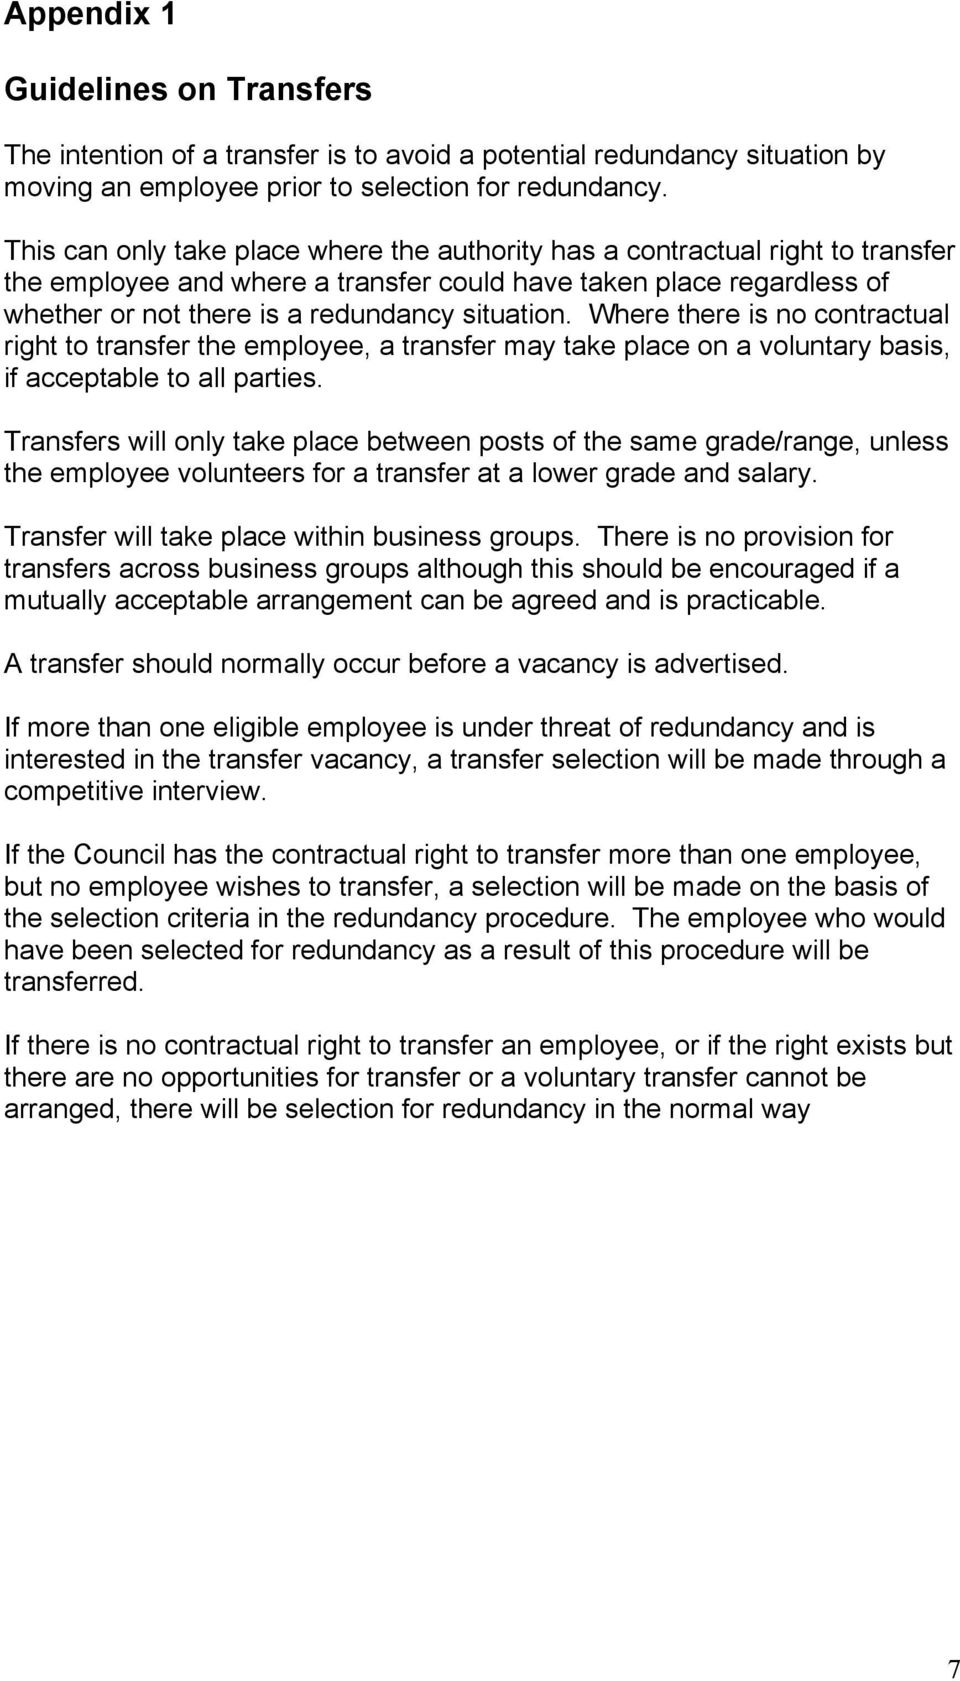 Where there is no contractual right to transfer the employee, a transfer may take place on a voluntary basis, if acceptable to all parties.